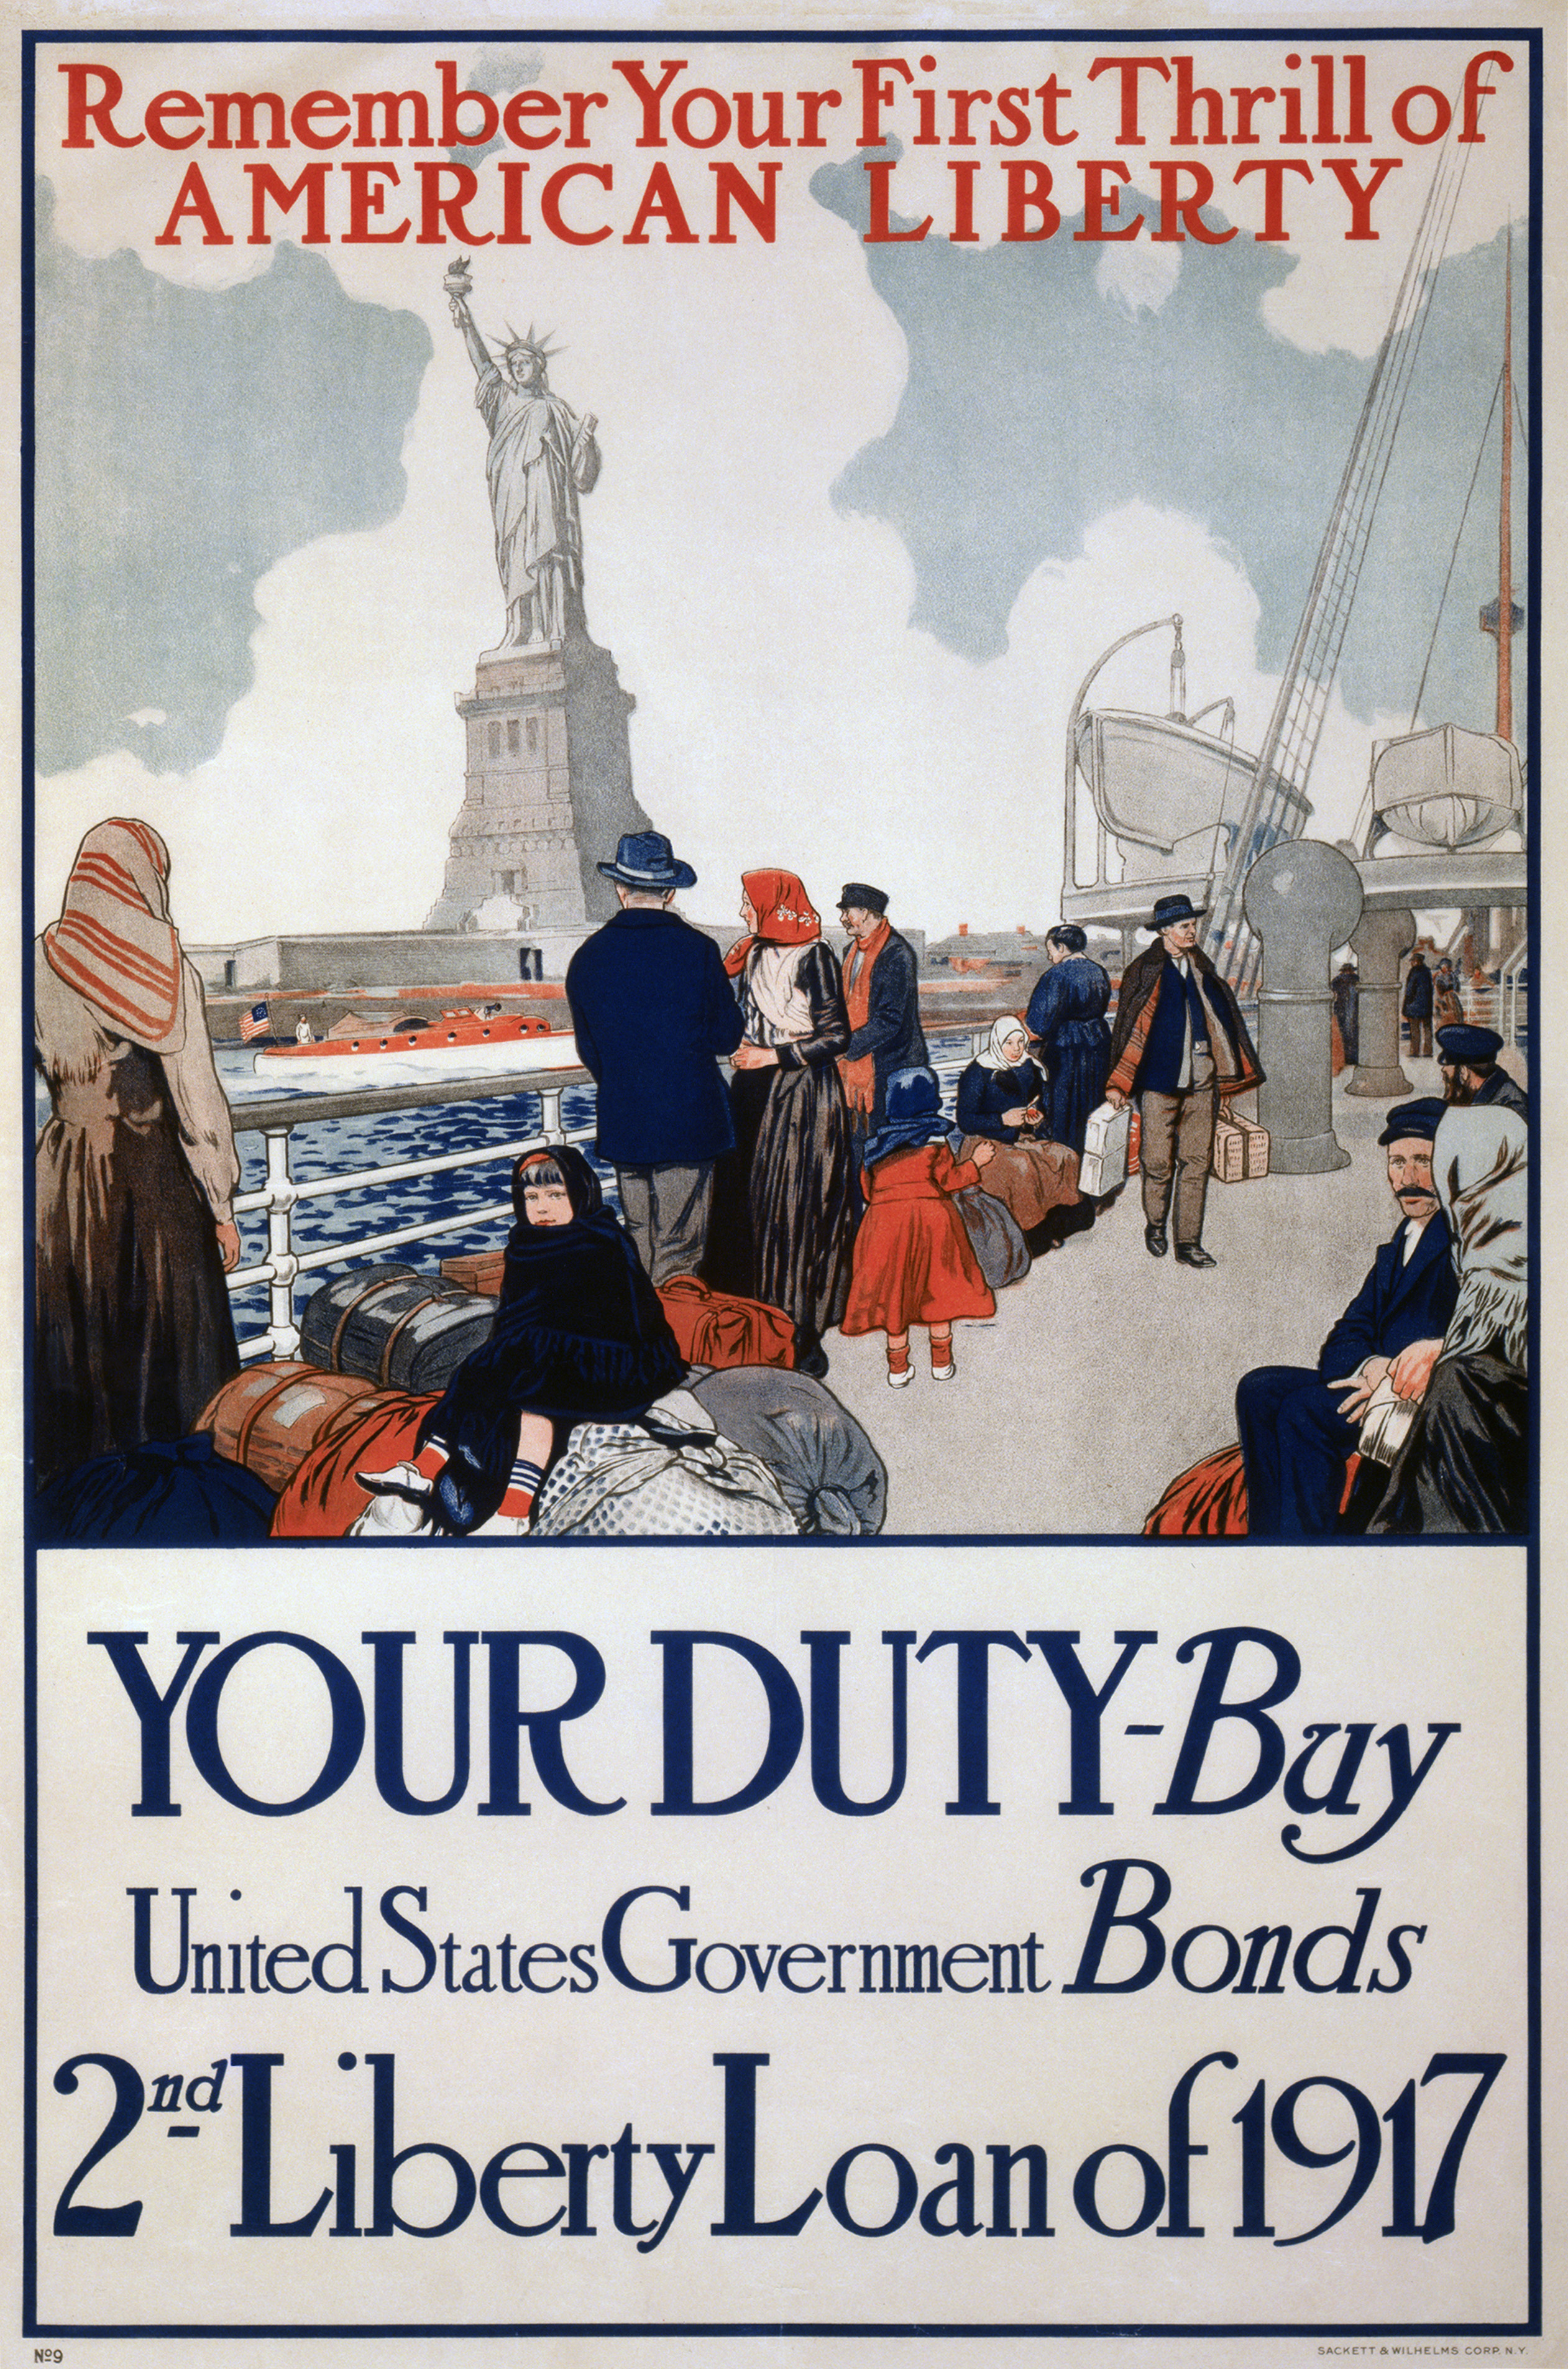 https://i1.wp.com/upload.wikimedia.org/wikipedia/commons/1/13/Statue_of_Liberty_1917_poster.jpg